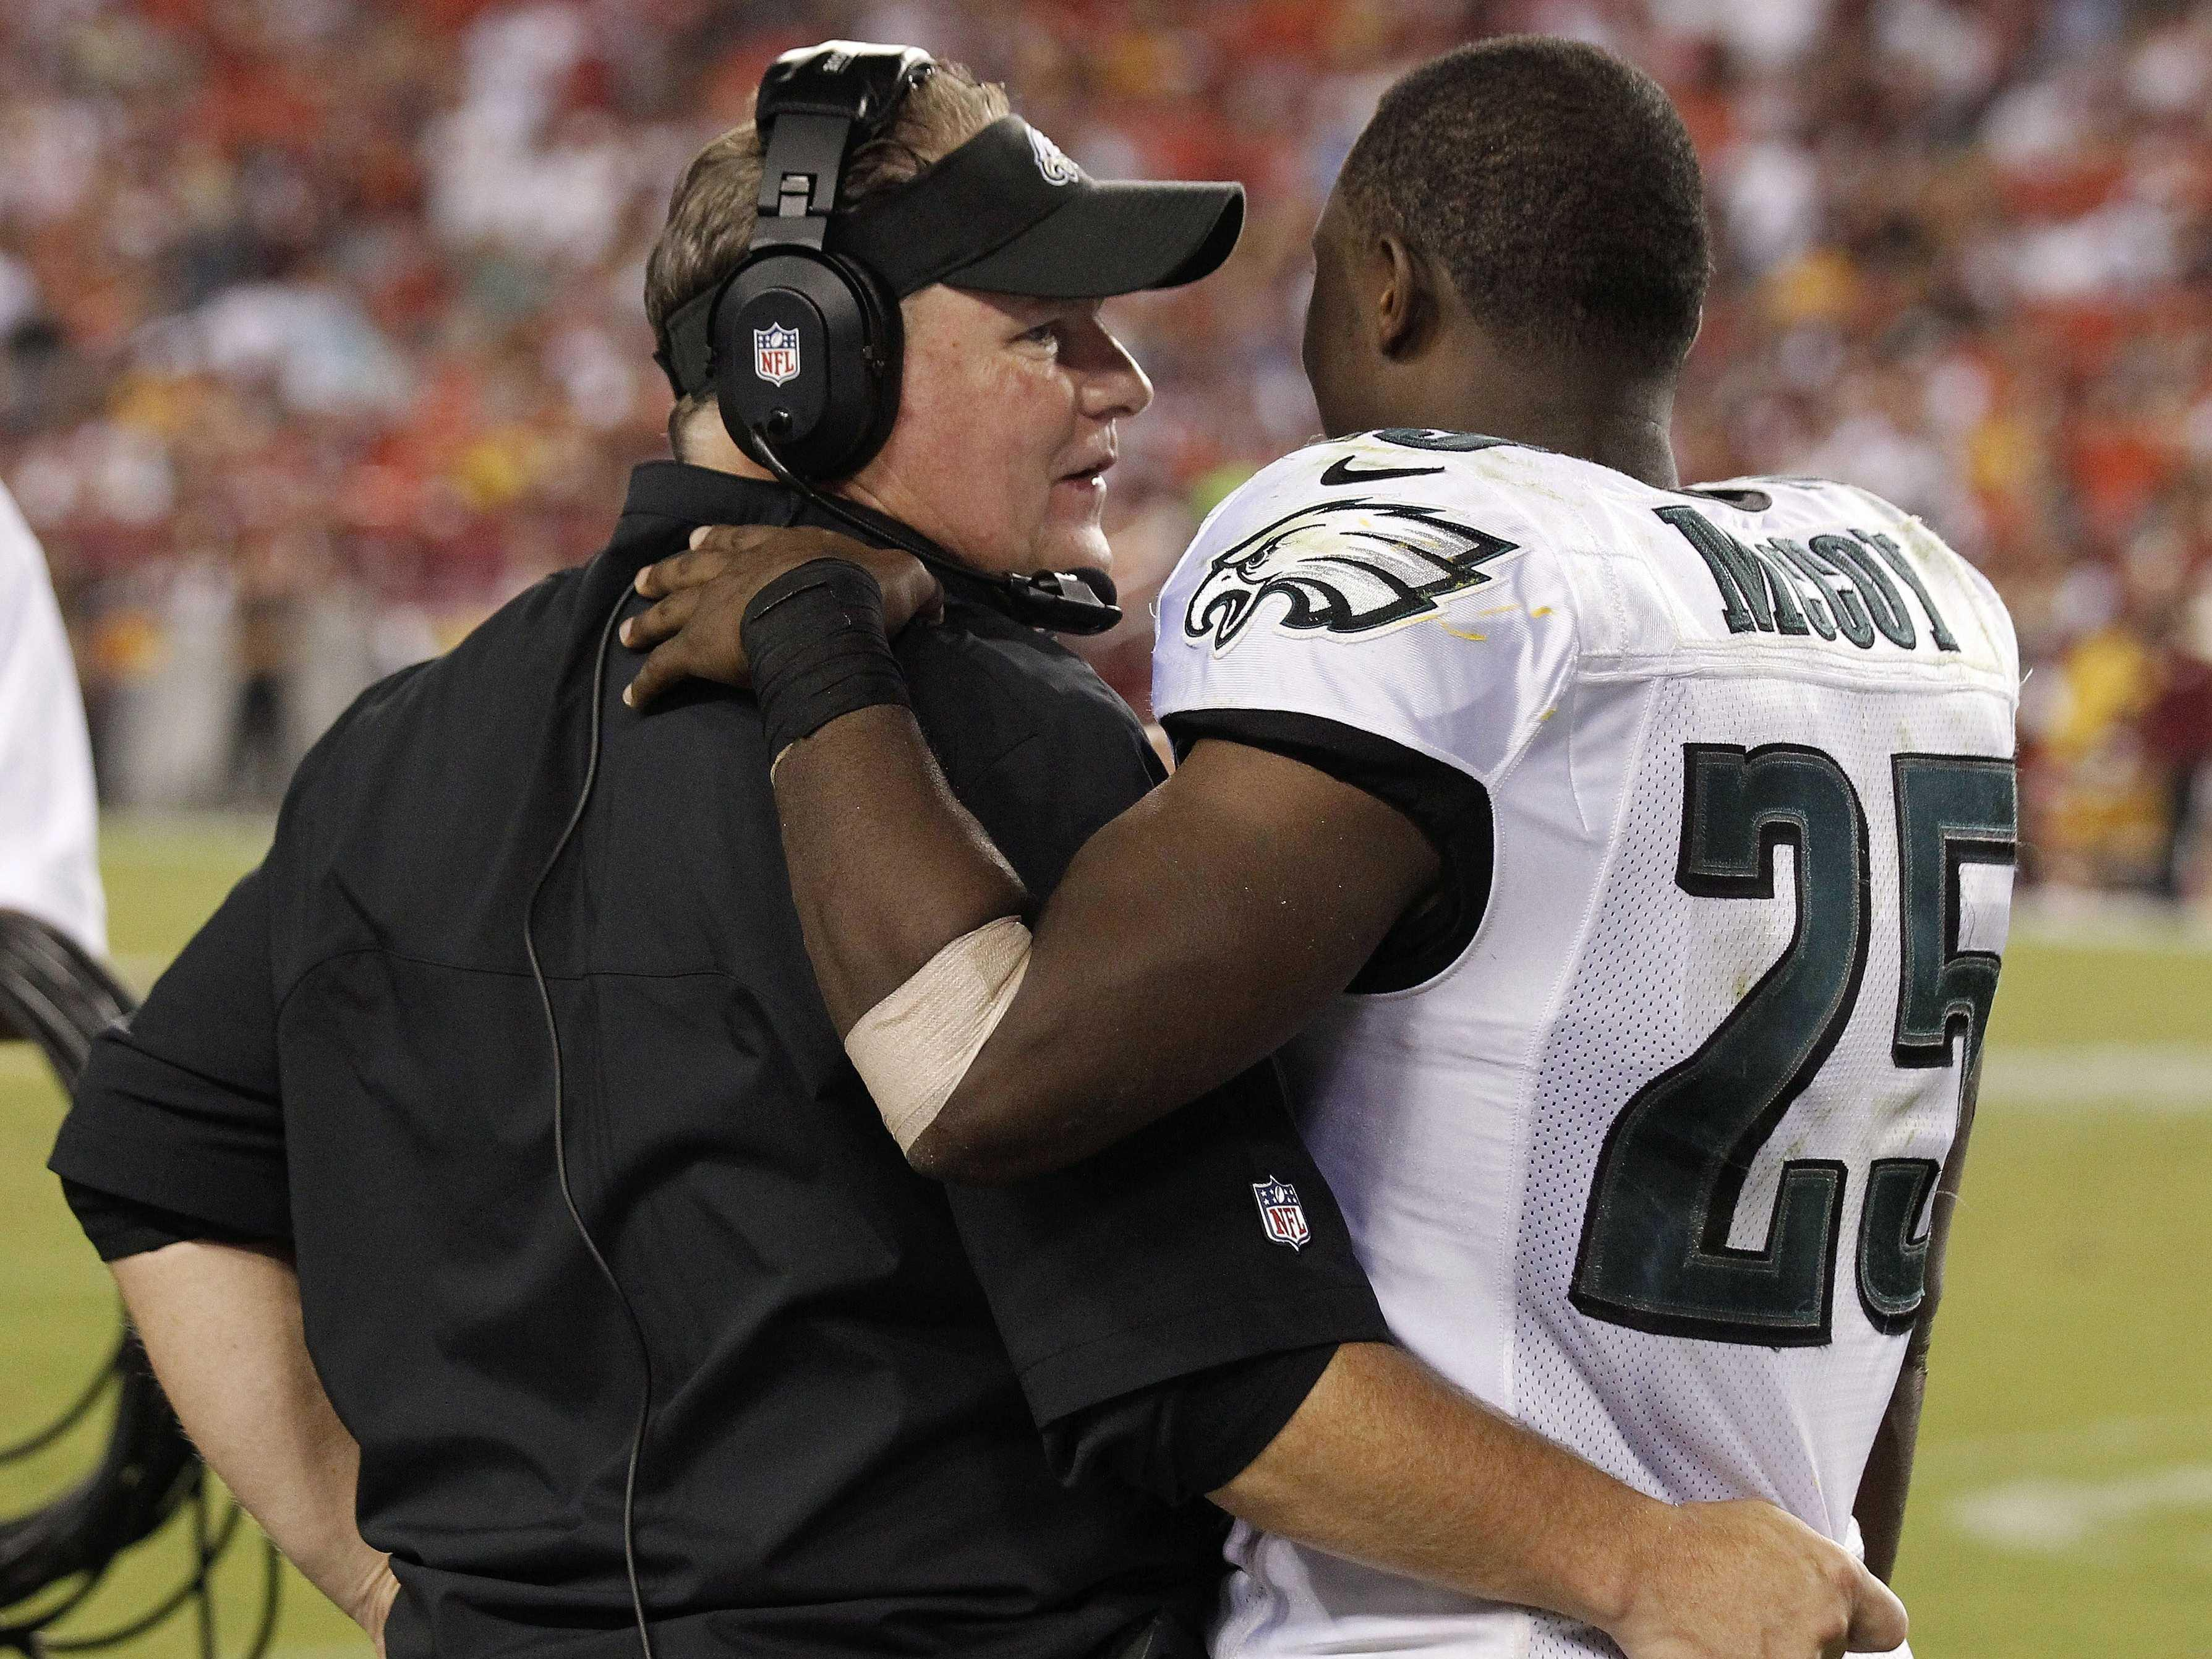 Chip Kelly's radical rebuilding plan for the Eagles already has one major problem